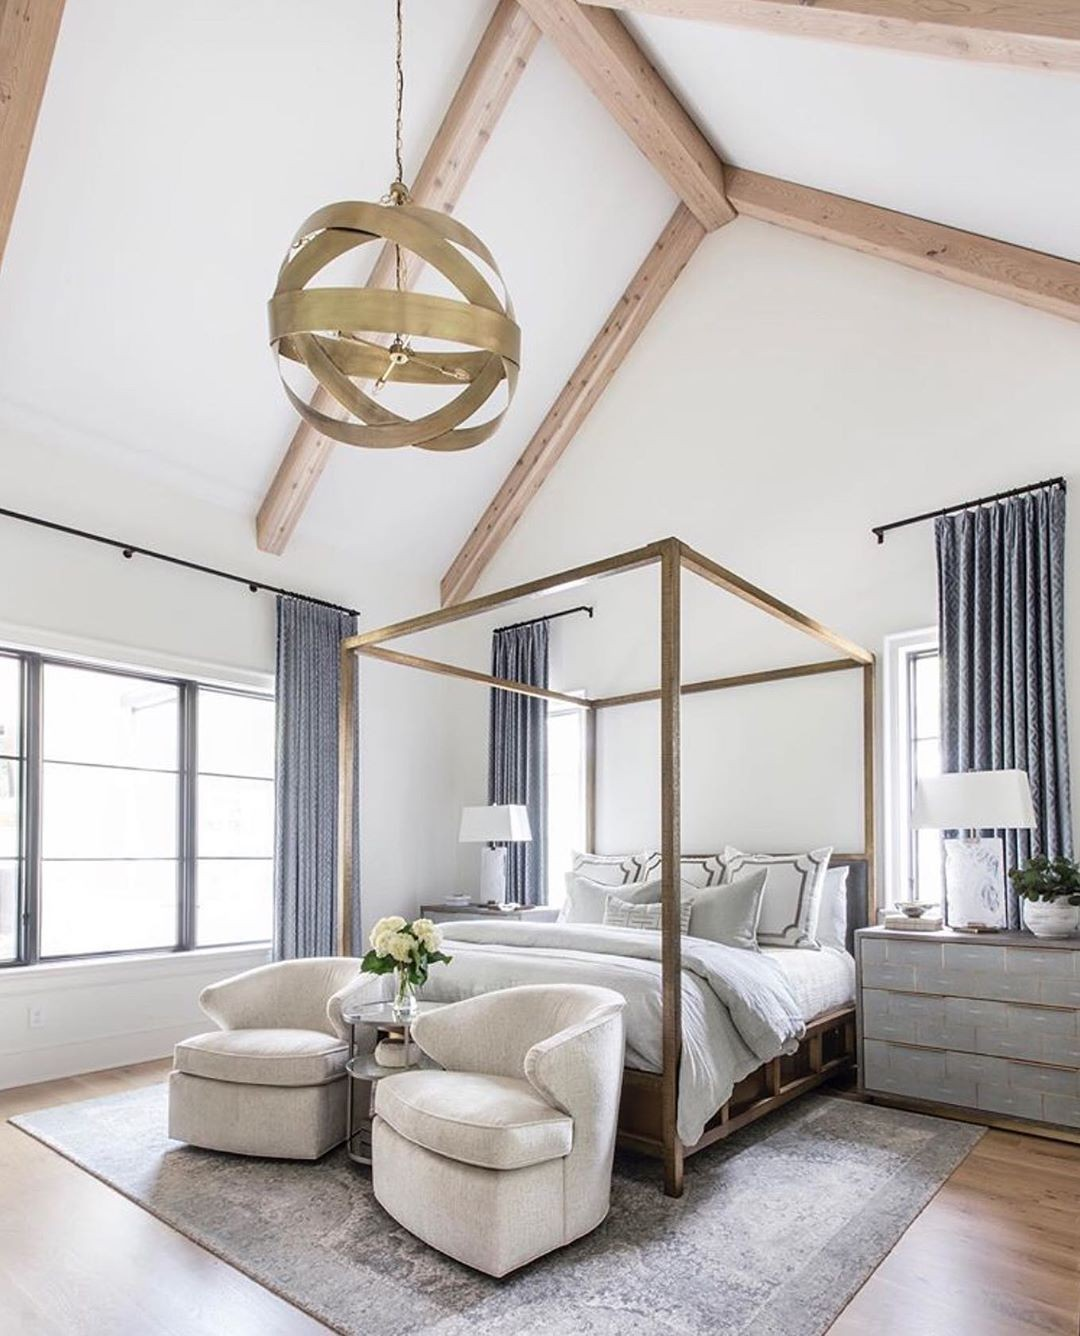 Home Decor Ideas to Consider for an Improved and Cozy Interior 2 home decor ideas Home Decor Ideas to Consider for an Improved and Cozy Interior Home Decor Ideas to Consider for an Improved and Cozy Interior 2